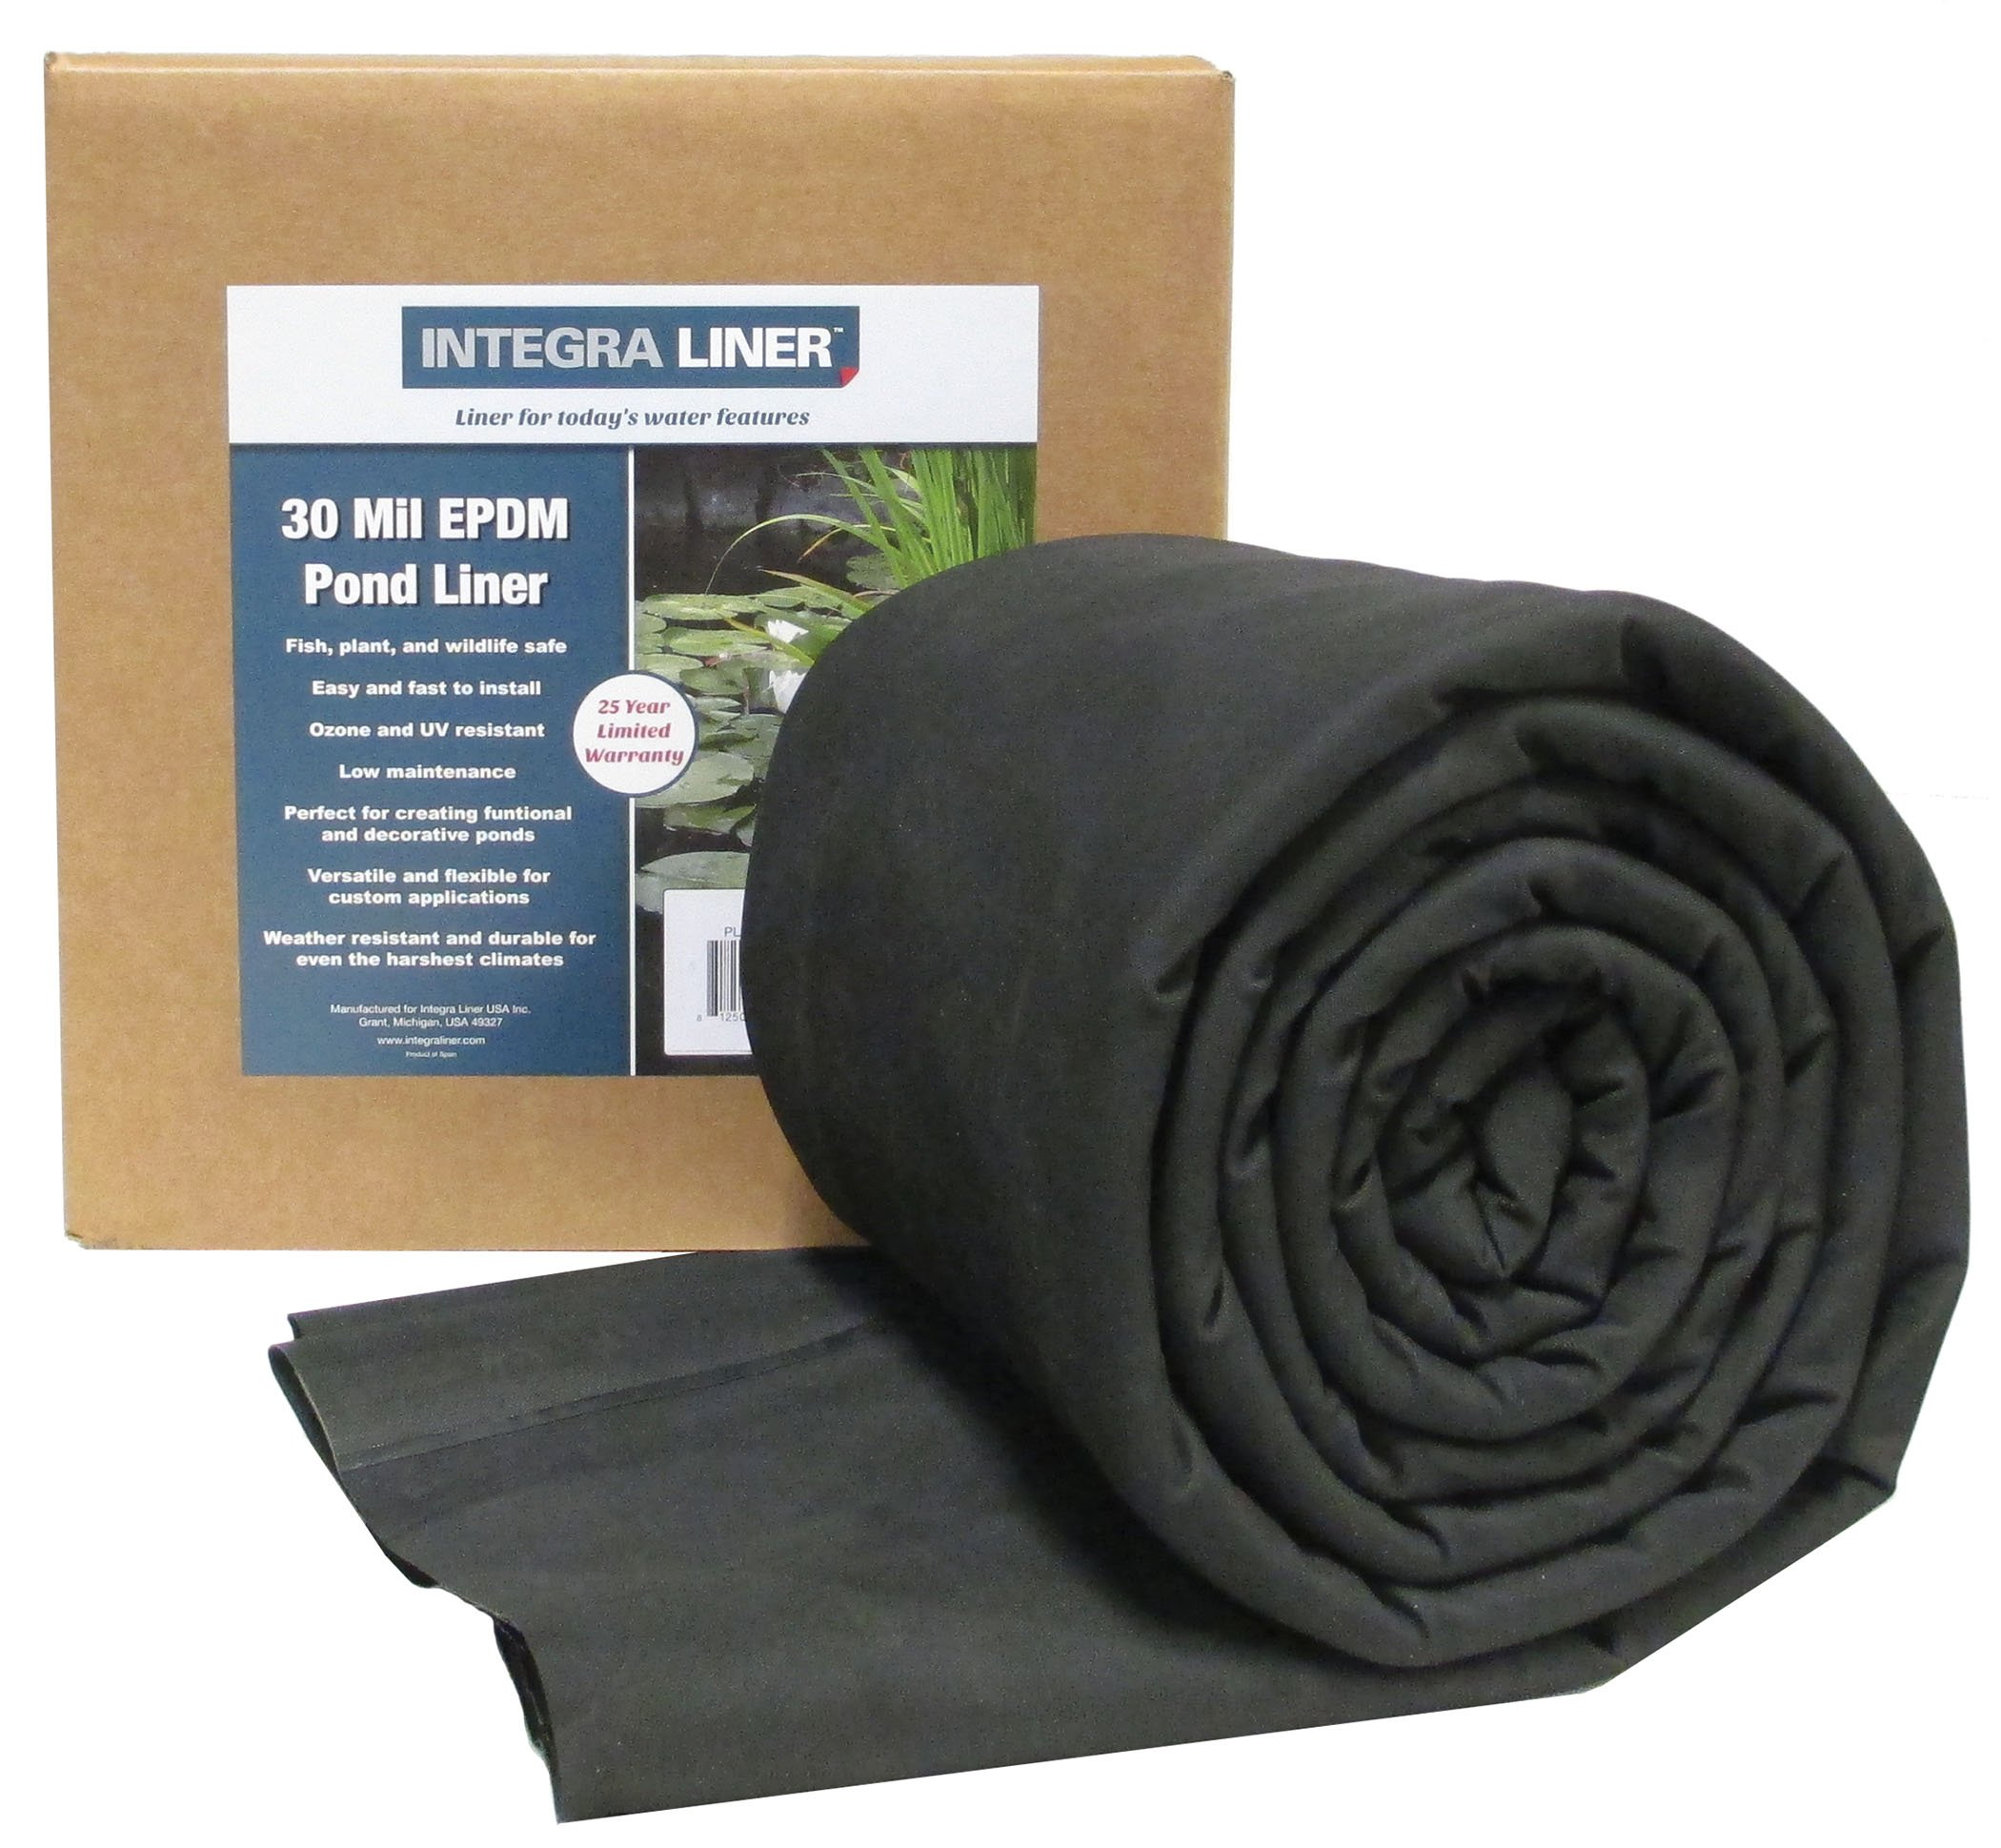 EasyPro Pond Products PL30-1520 Integra 30 Mil EPMD Rubber Pond Liner, 15 x 20' by EasyPro Pond Products